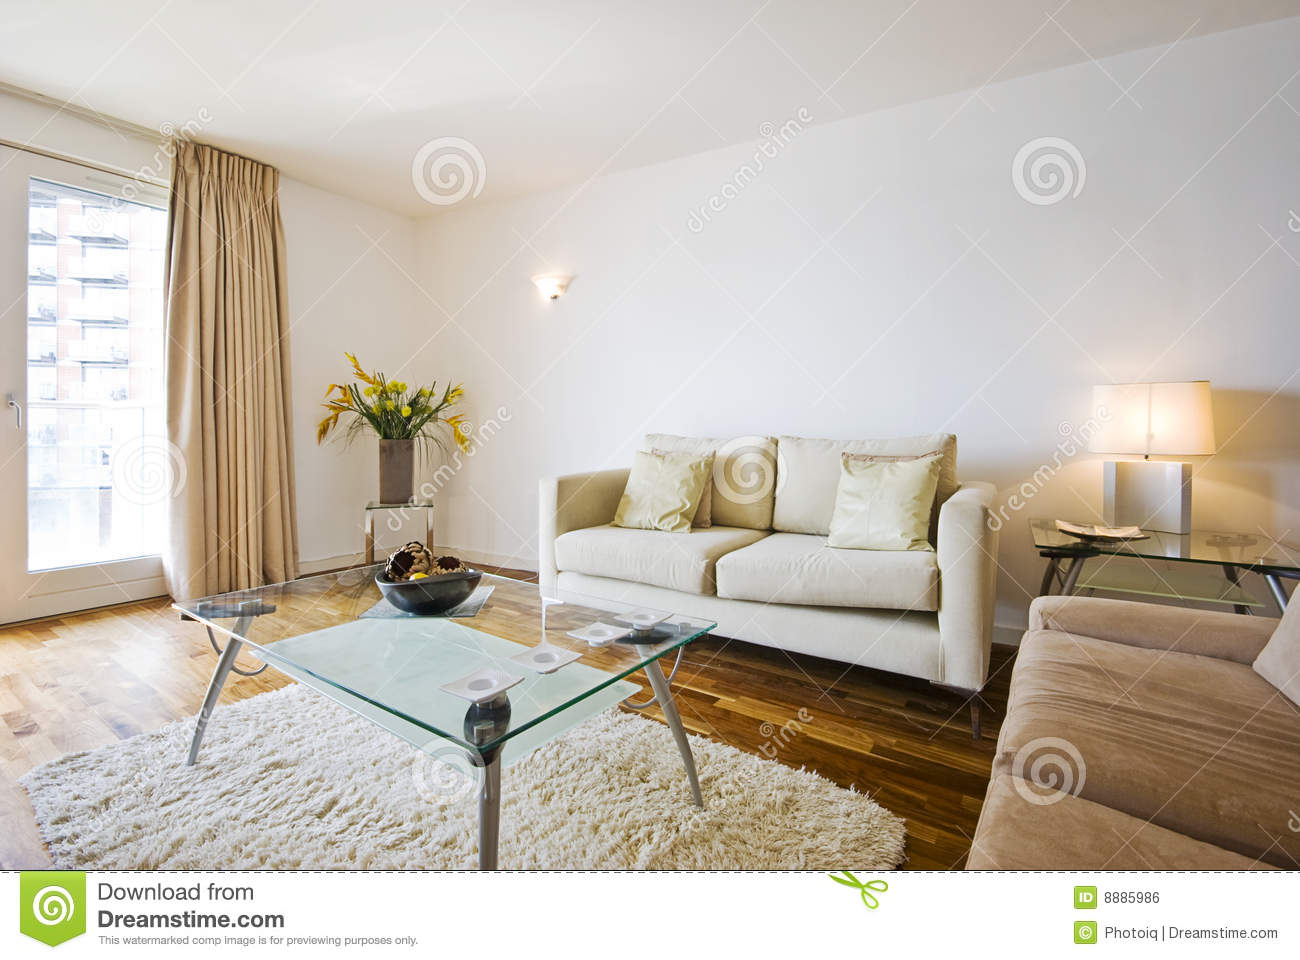 Smart living room - Smart Living Room Royalty Free Stock Image - Image: 8885986